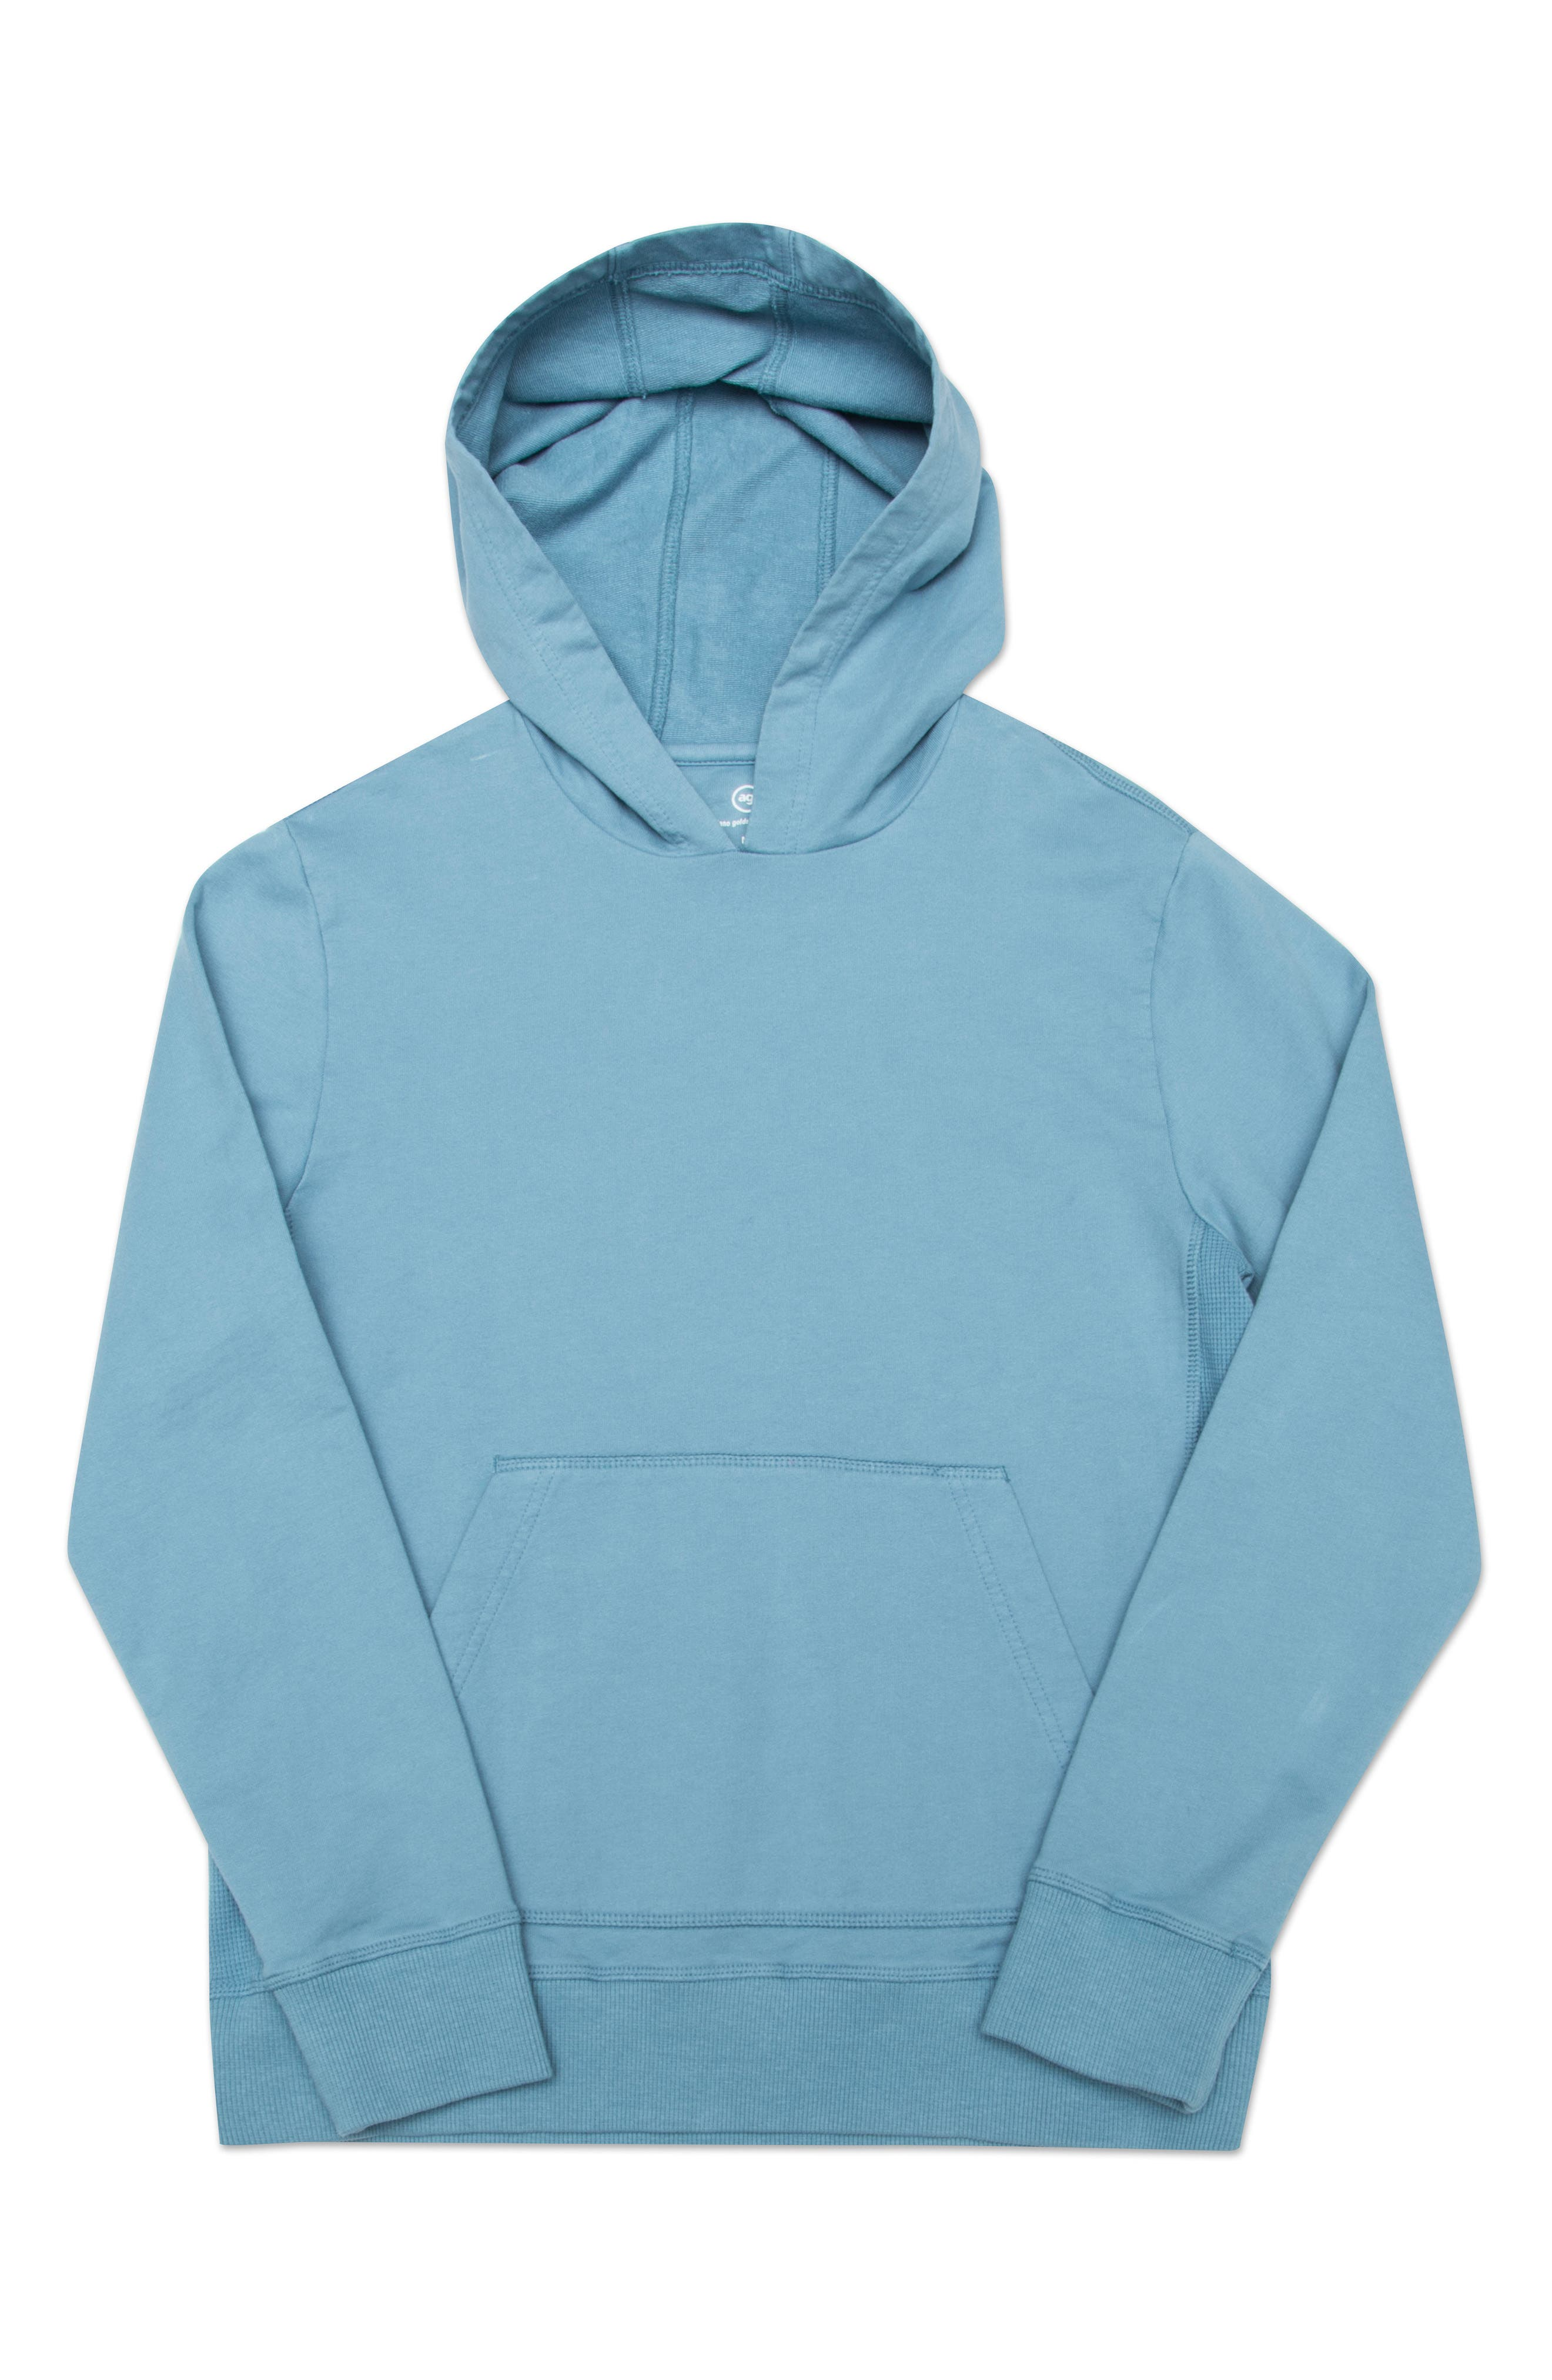 AG ADRIANO GOLDSCHMIED KIDS Cain Hoodie, Main, color, 416